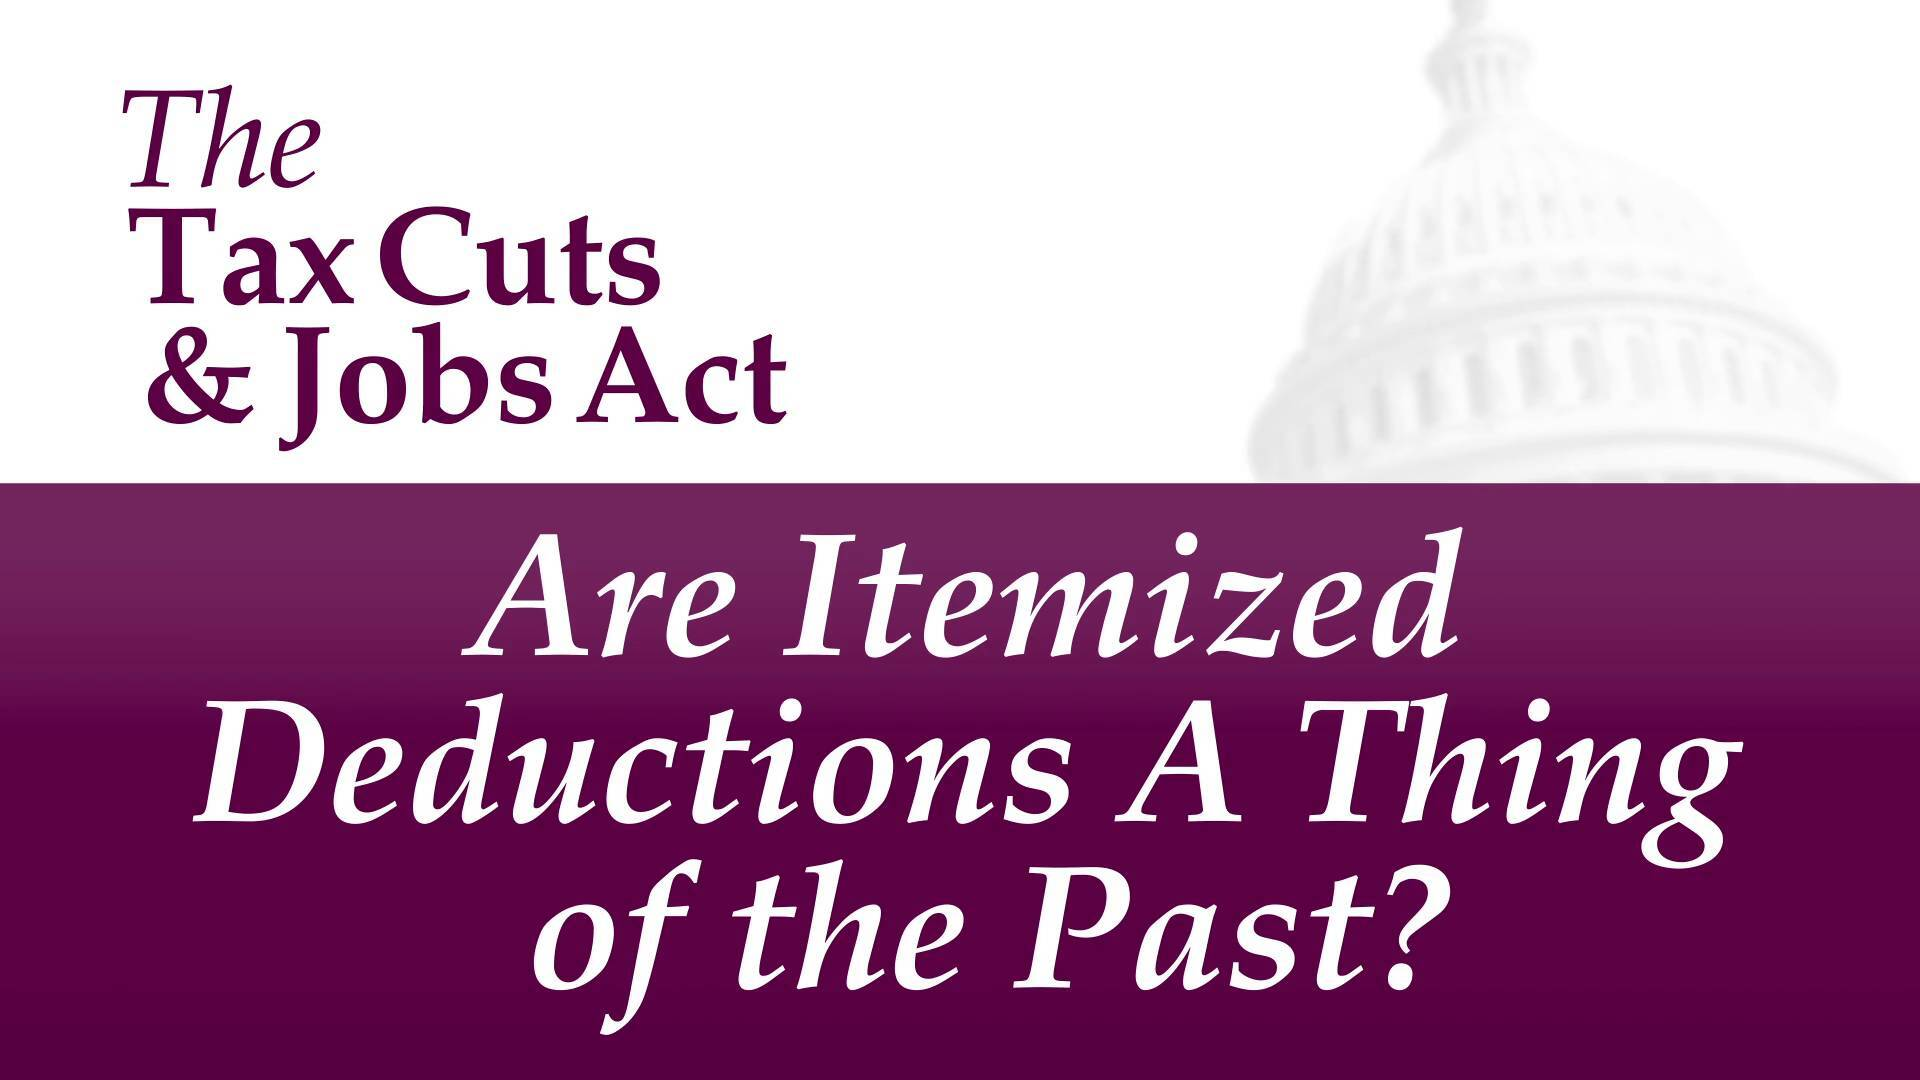 Tax cuts and jobs act - what you need to know